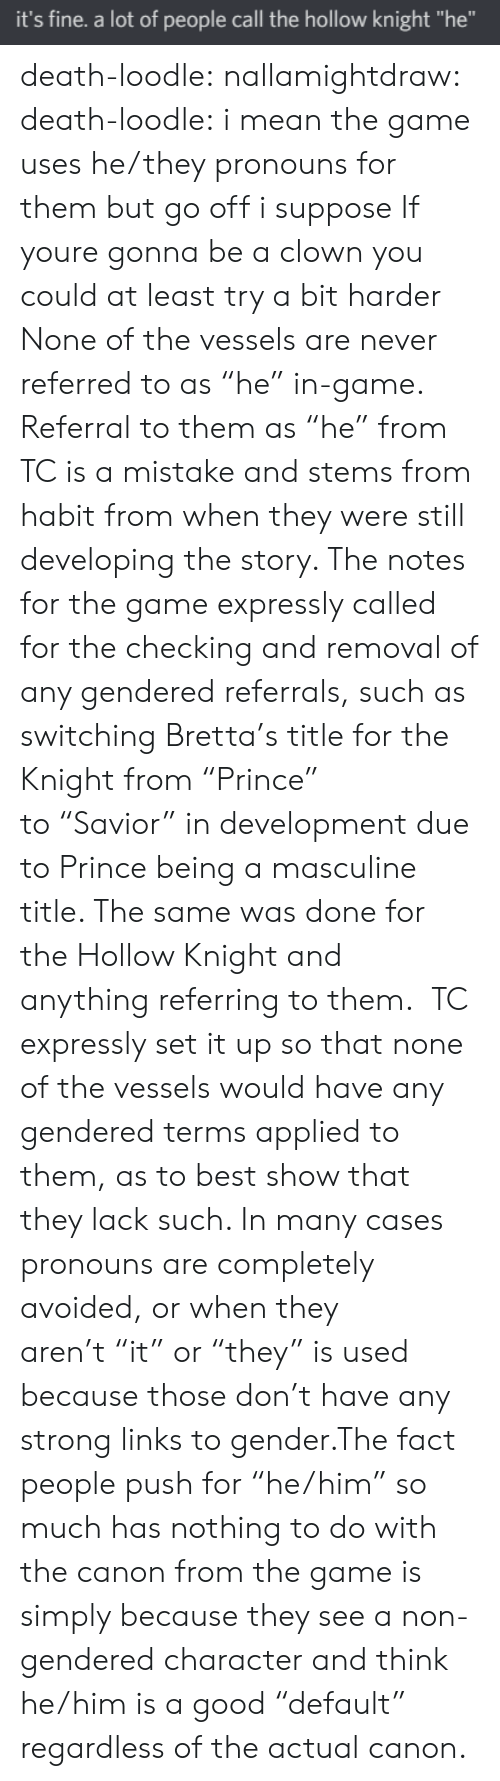 "Prince, The Game, and Tumblr: it's fine. a lot of people call the hollow knight ""he"" death-loodle: nallamightdraw:  death-loodle:  i mean the game uses he/they pronouns for them but go off i suppose  If youre gonna be a clown you could at least try a bit harder None of the vessels are never referred to as ""he"" in-game. Referral to them as ""he"" from TC is a mistake and stems from habit from when they were still developing the story. The notes for the game expressly called for the checking and removal of any gendered referrals, such as switching Bretta's title for the Knight from ""Prince"" to ""Savior"" in development due to Prince being a masculine title. The same was done for the Hollow Knight and anything referring to them.  TC expressly set it up so that none of the vessels would have any gendered terms applied to them, as to best show that they lack such. In many cases pronouns are completely avoided, or when they aren't ""it"" or ""they"" is used because those don't have any strong links to gender.The fact people push for ""he/him"" so much has nothing to do with the canon from the game is simply because they see a non-gendered character and think he/him is a good ""default"" regardless of the actual canon."